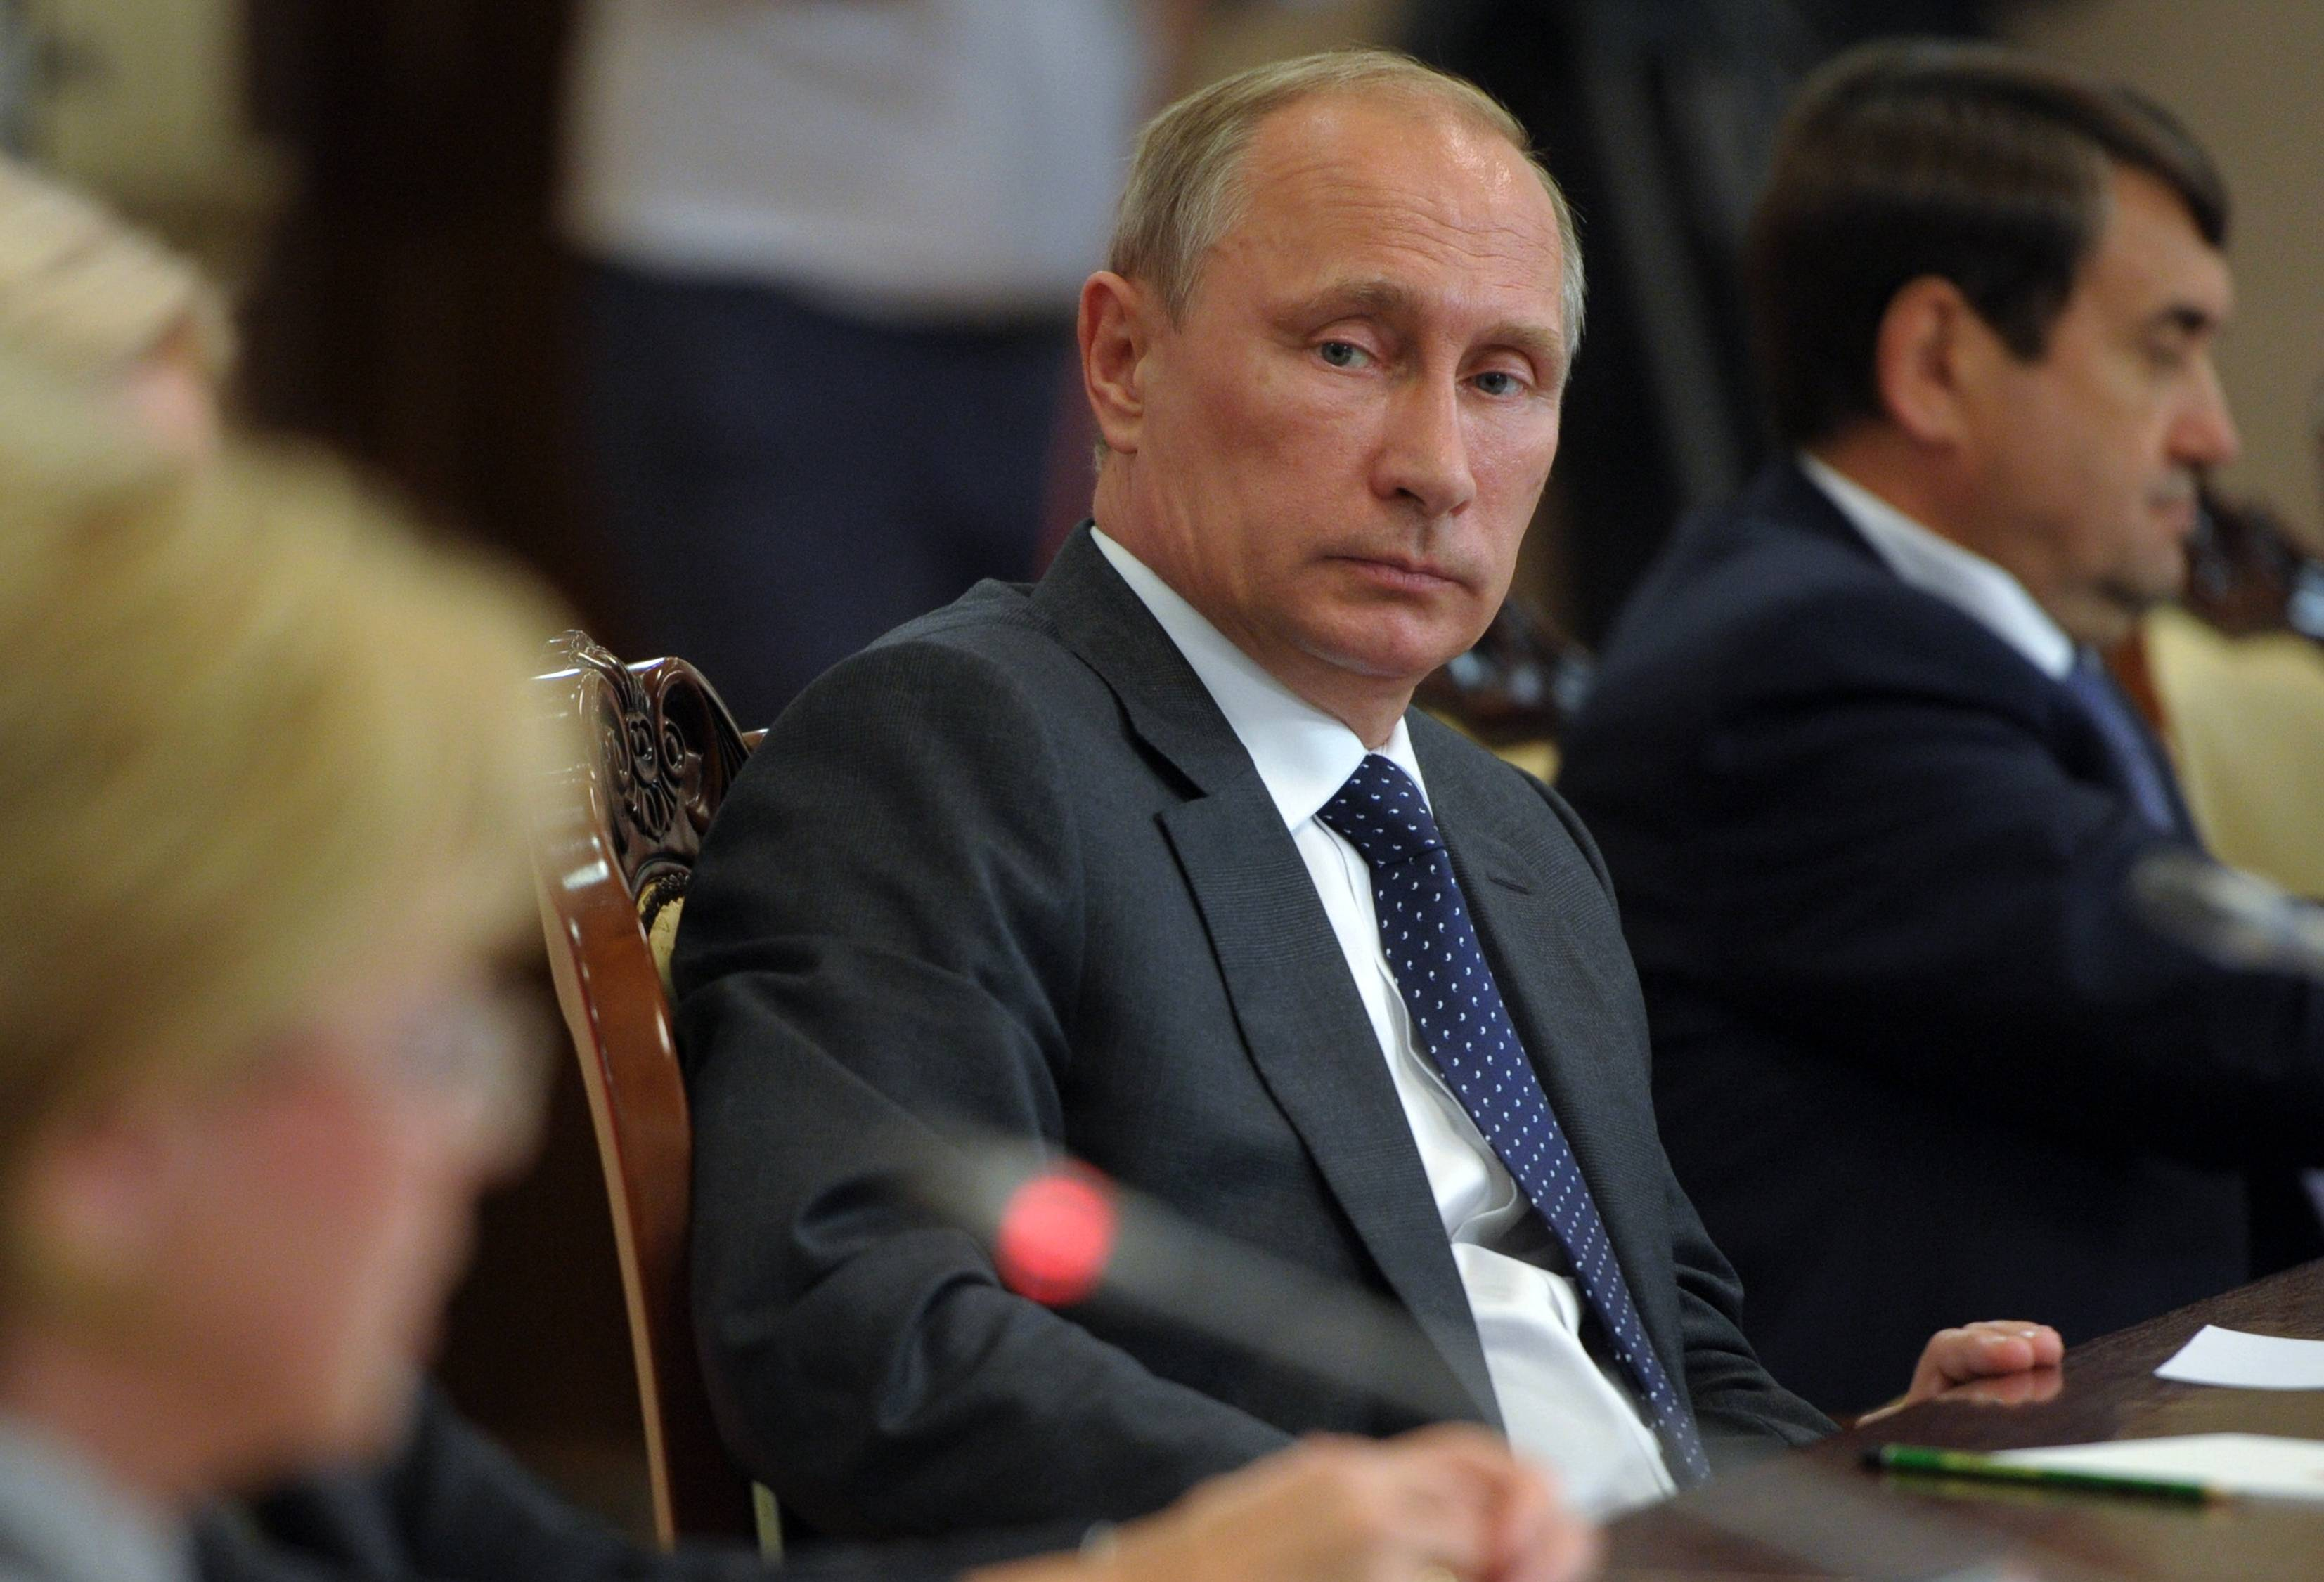 Russian President Vladimir Putin has ordered government agencies to restrict imports of food and agricultural products from the countries that have imposed sanctions against Russia over the conflict in Ukraine.